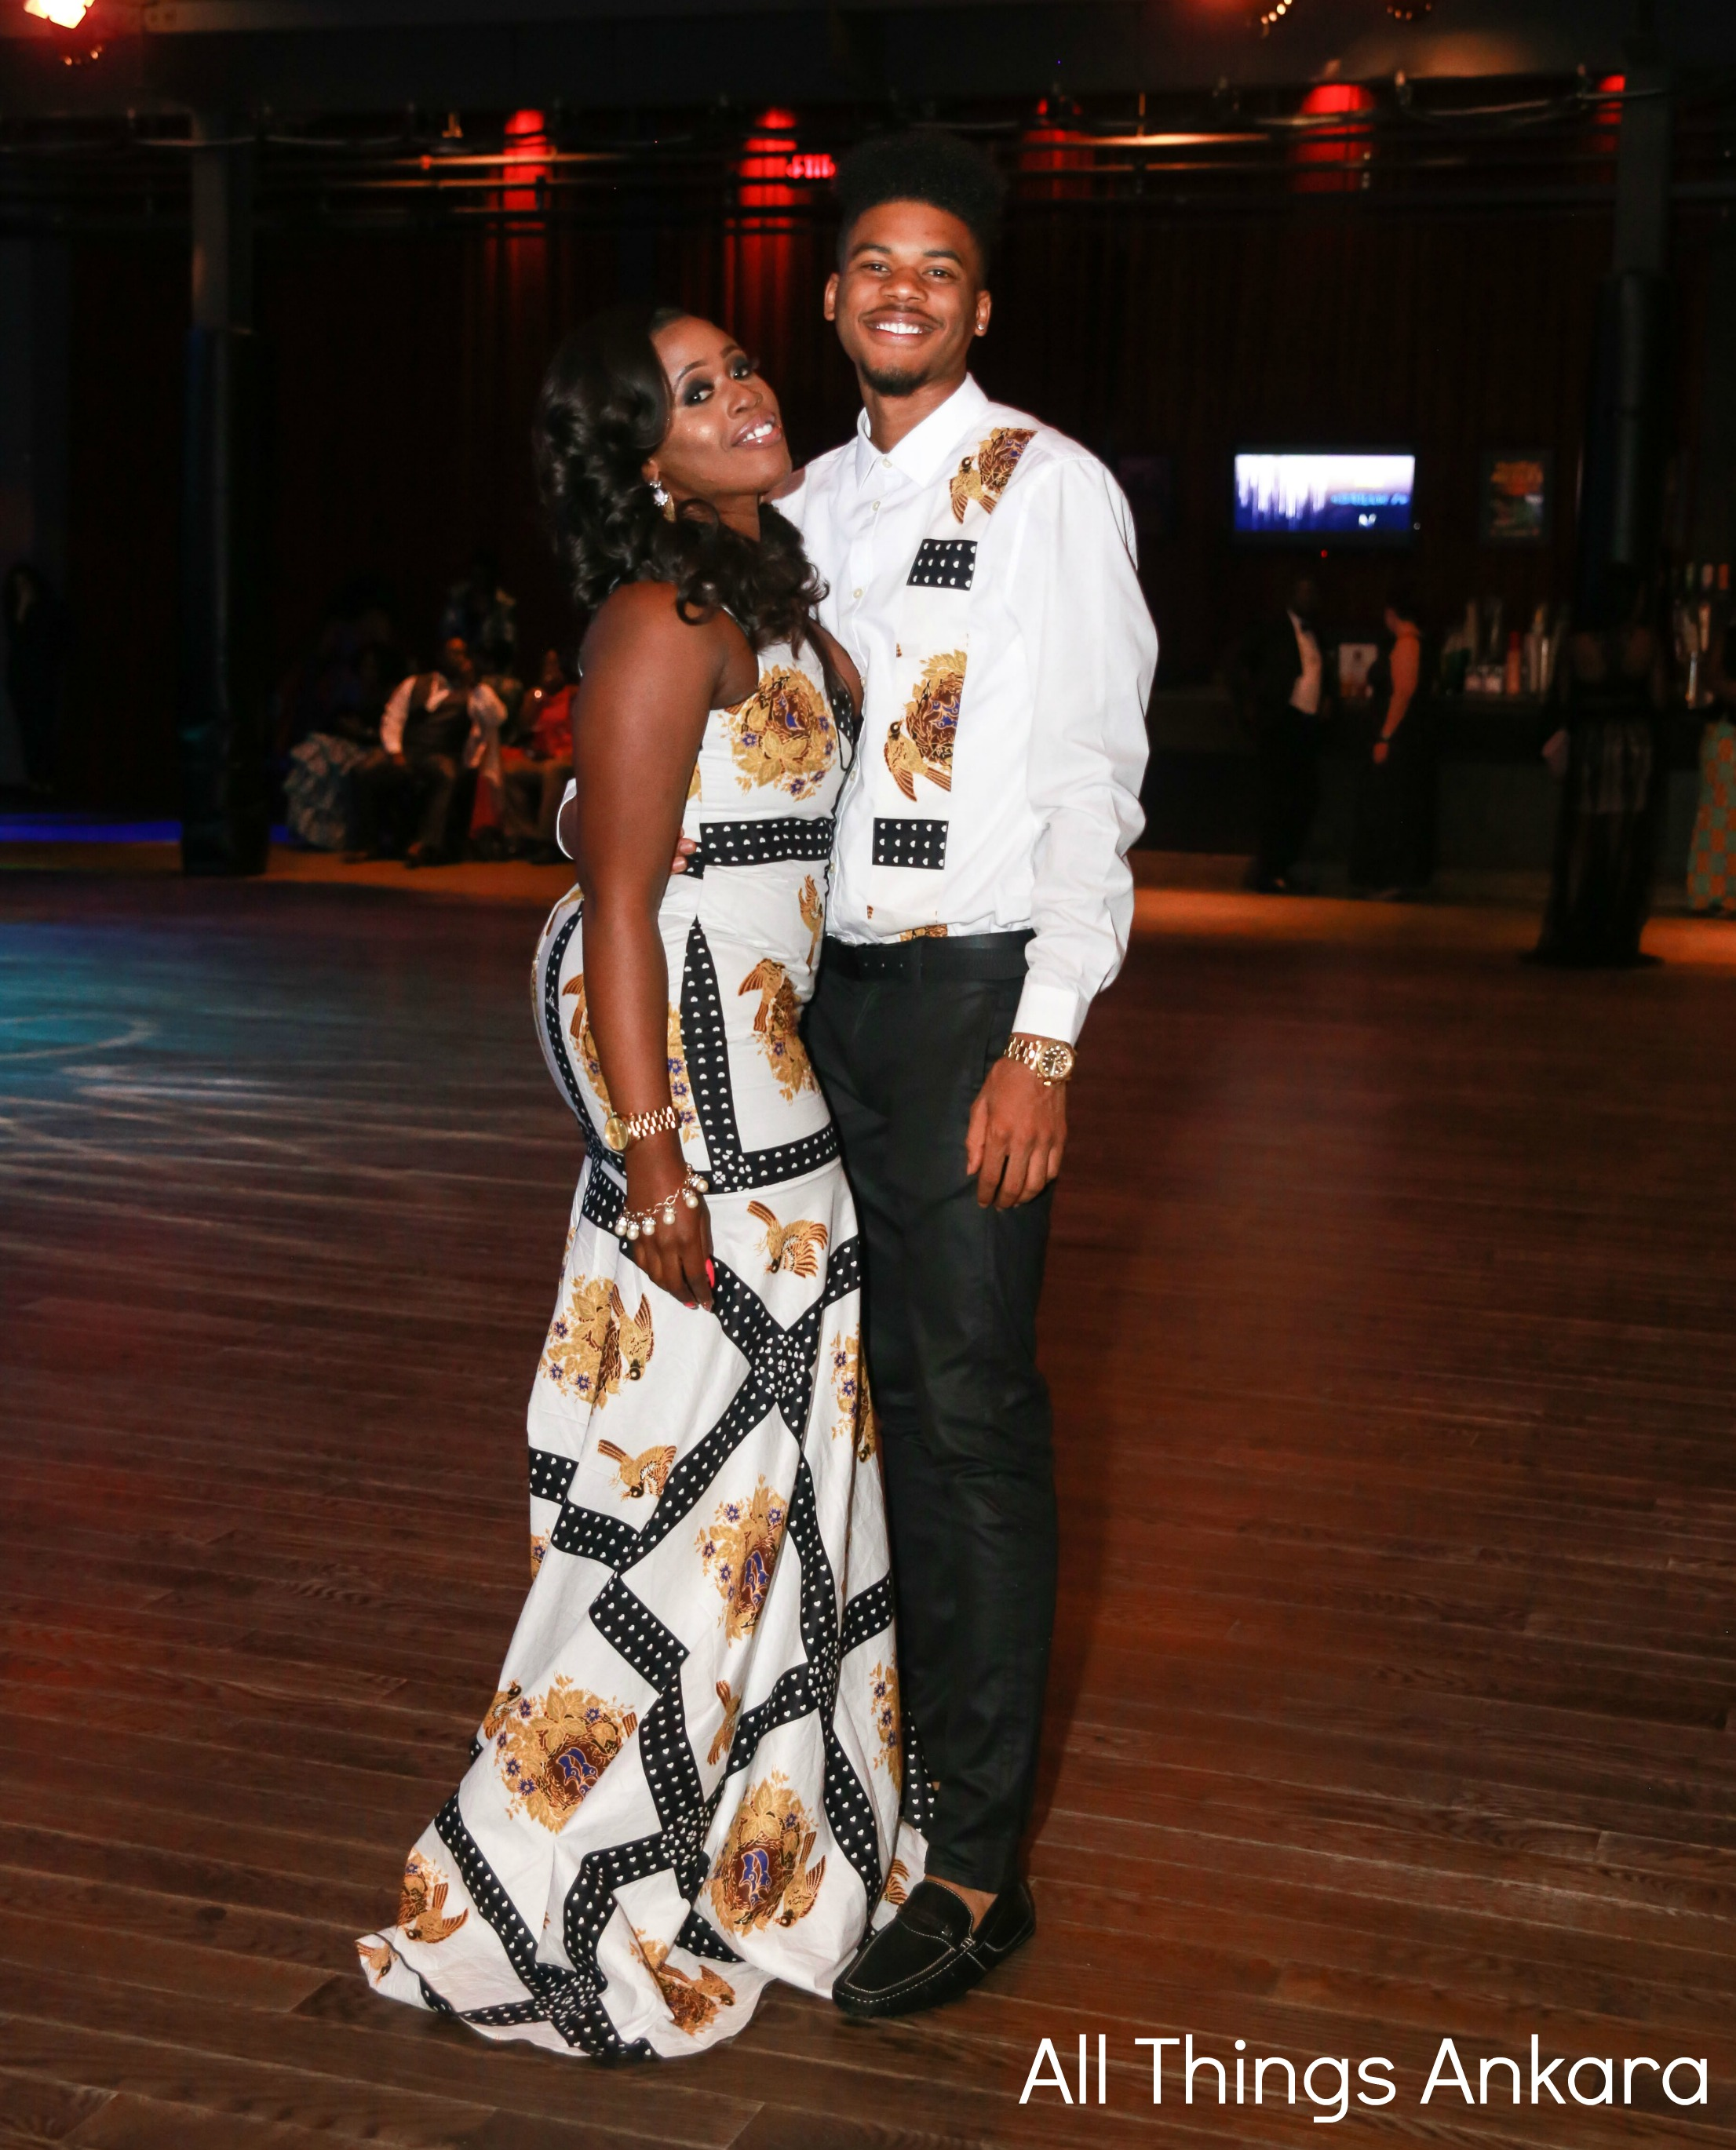 ball-gwb-commissions-best-dressed-couples-at-gwb-commissions-7th-annual-green-white-blue-ball-2016-1